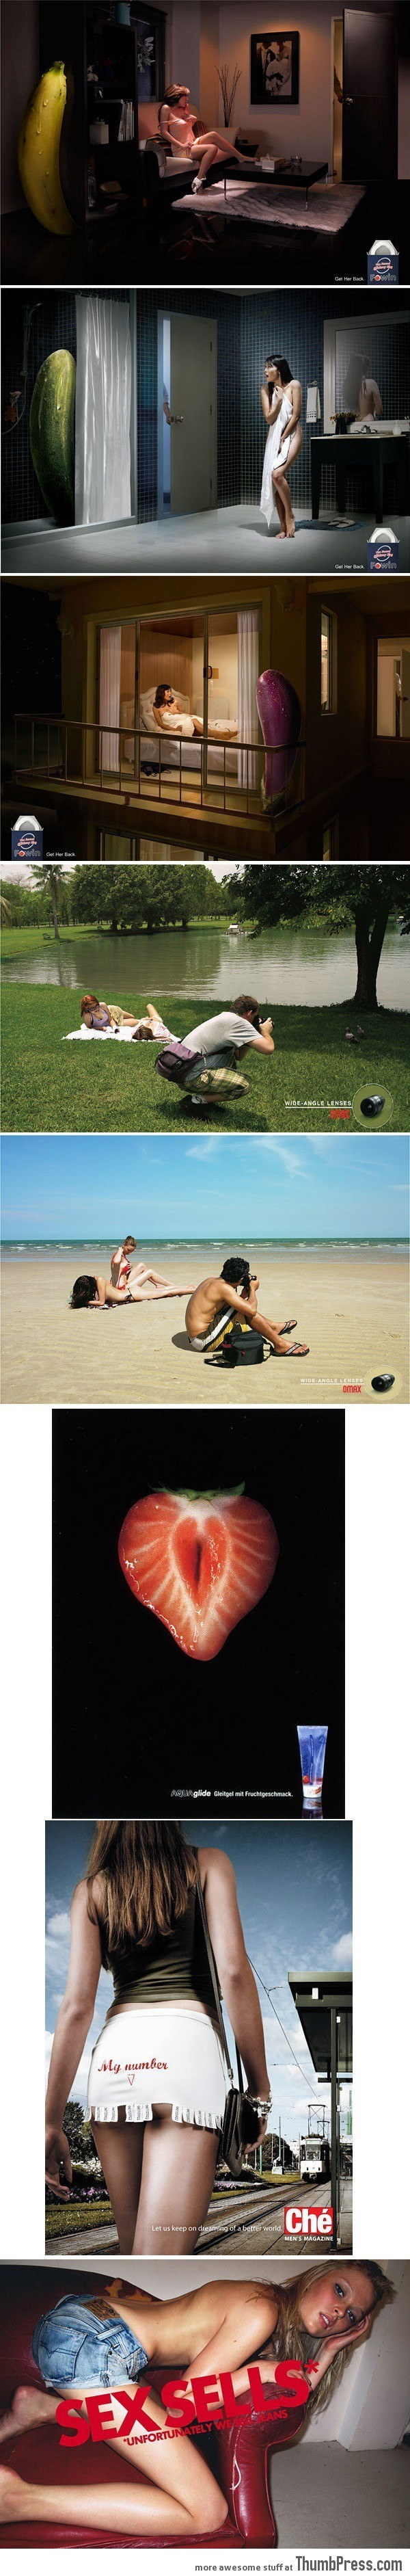 Some of the most sexually provocative ads